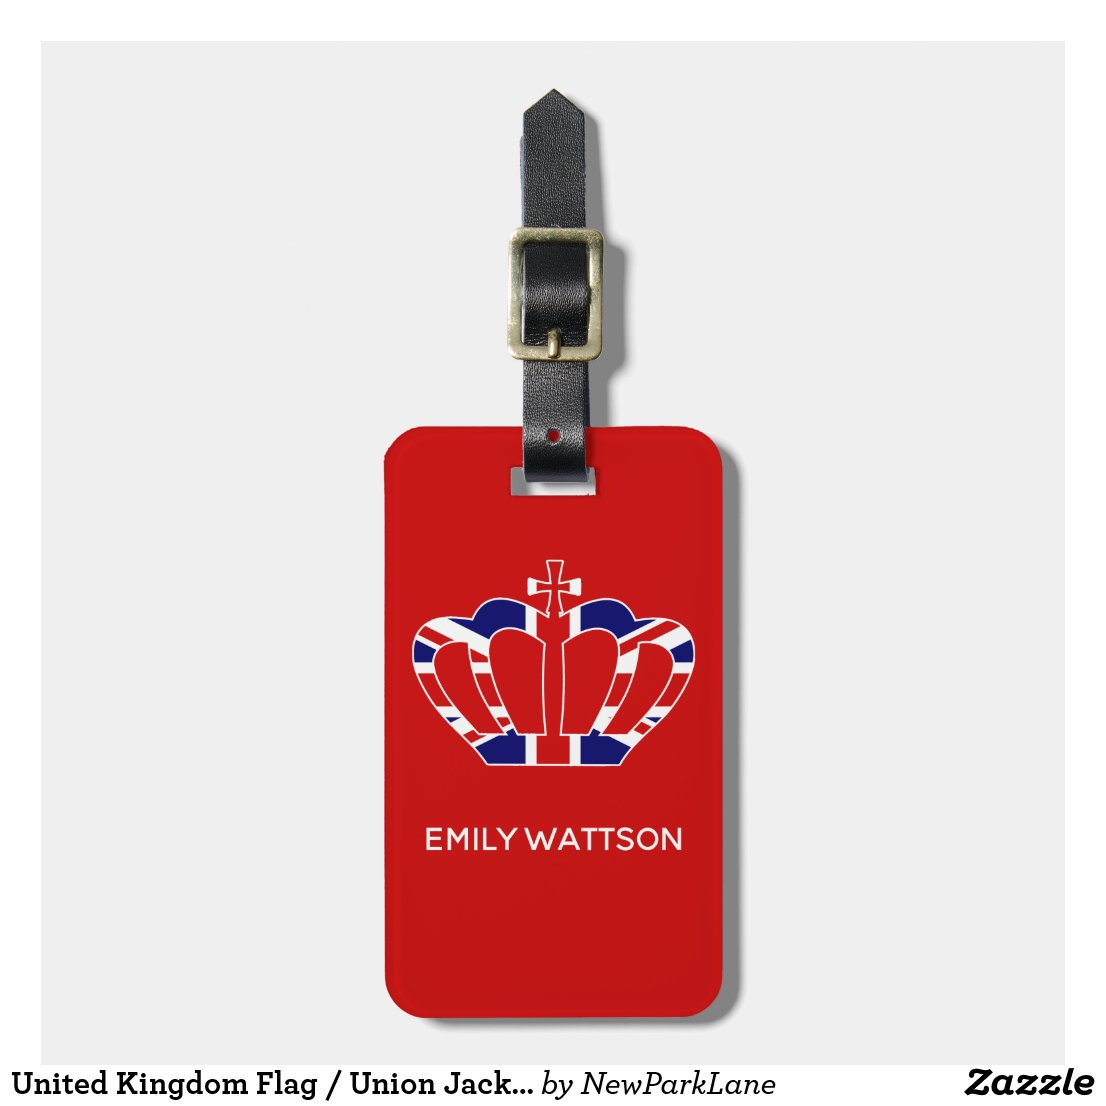 United Kingdom Flag / Union Jack Crown - Red Luggage Tag